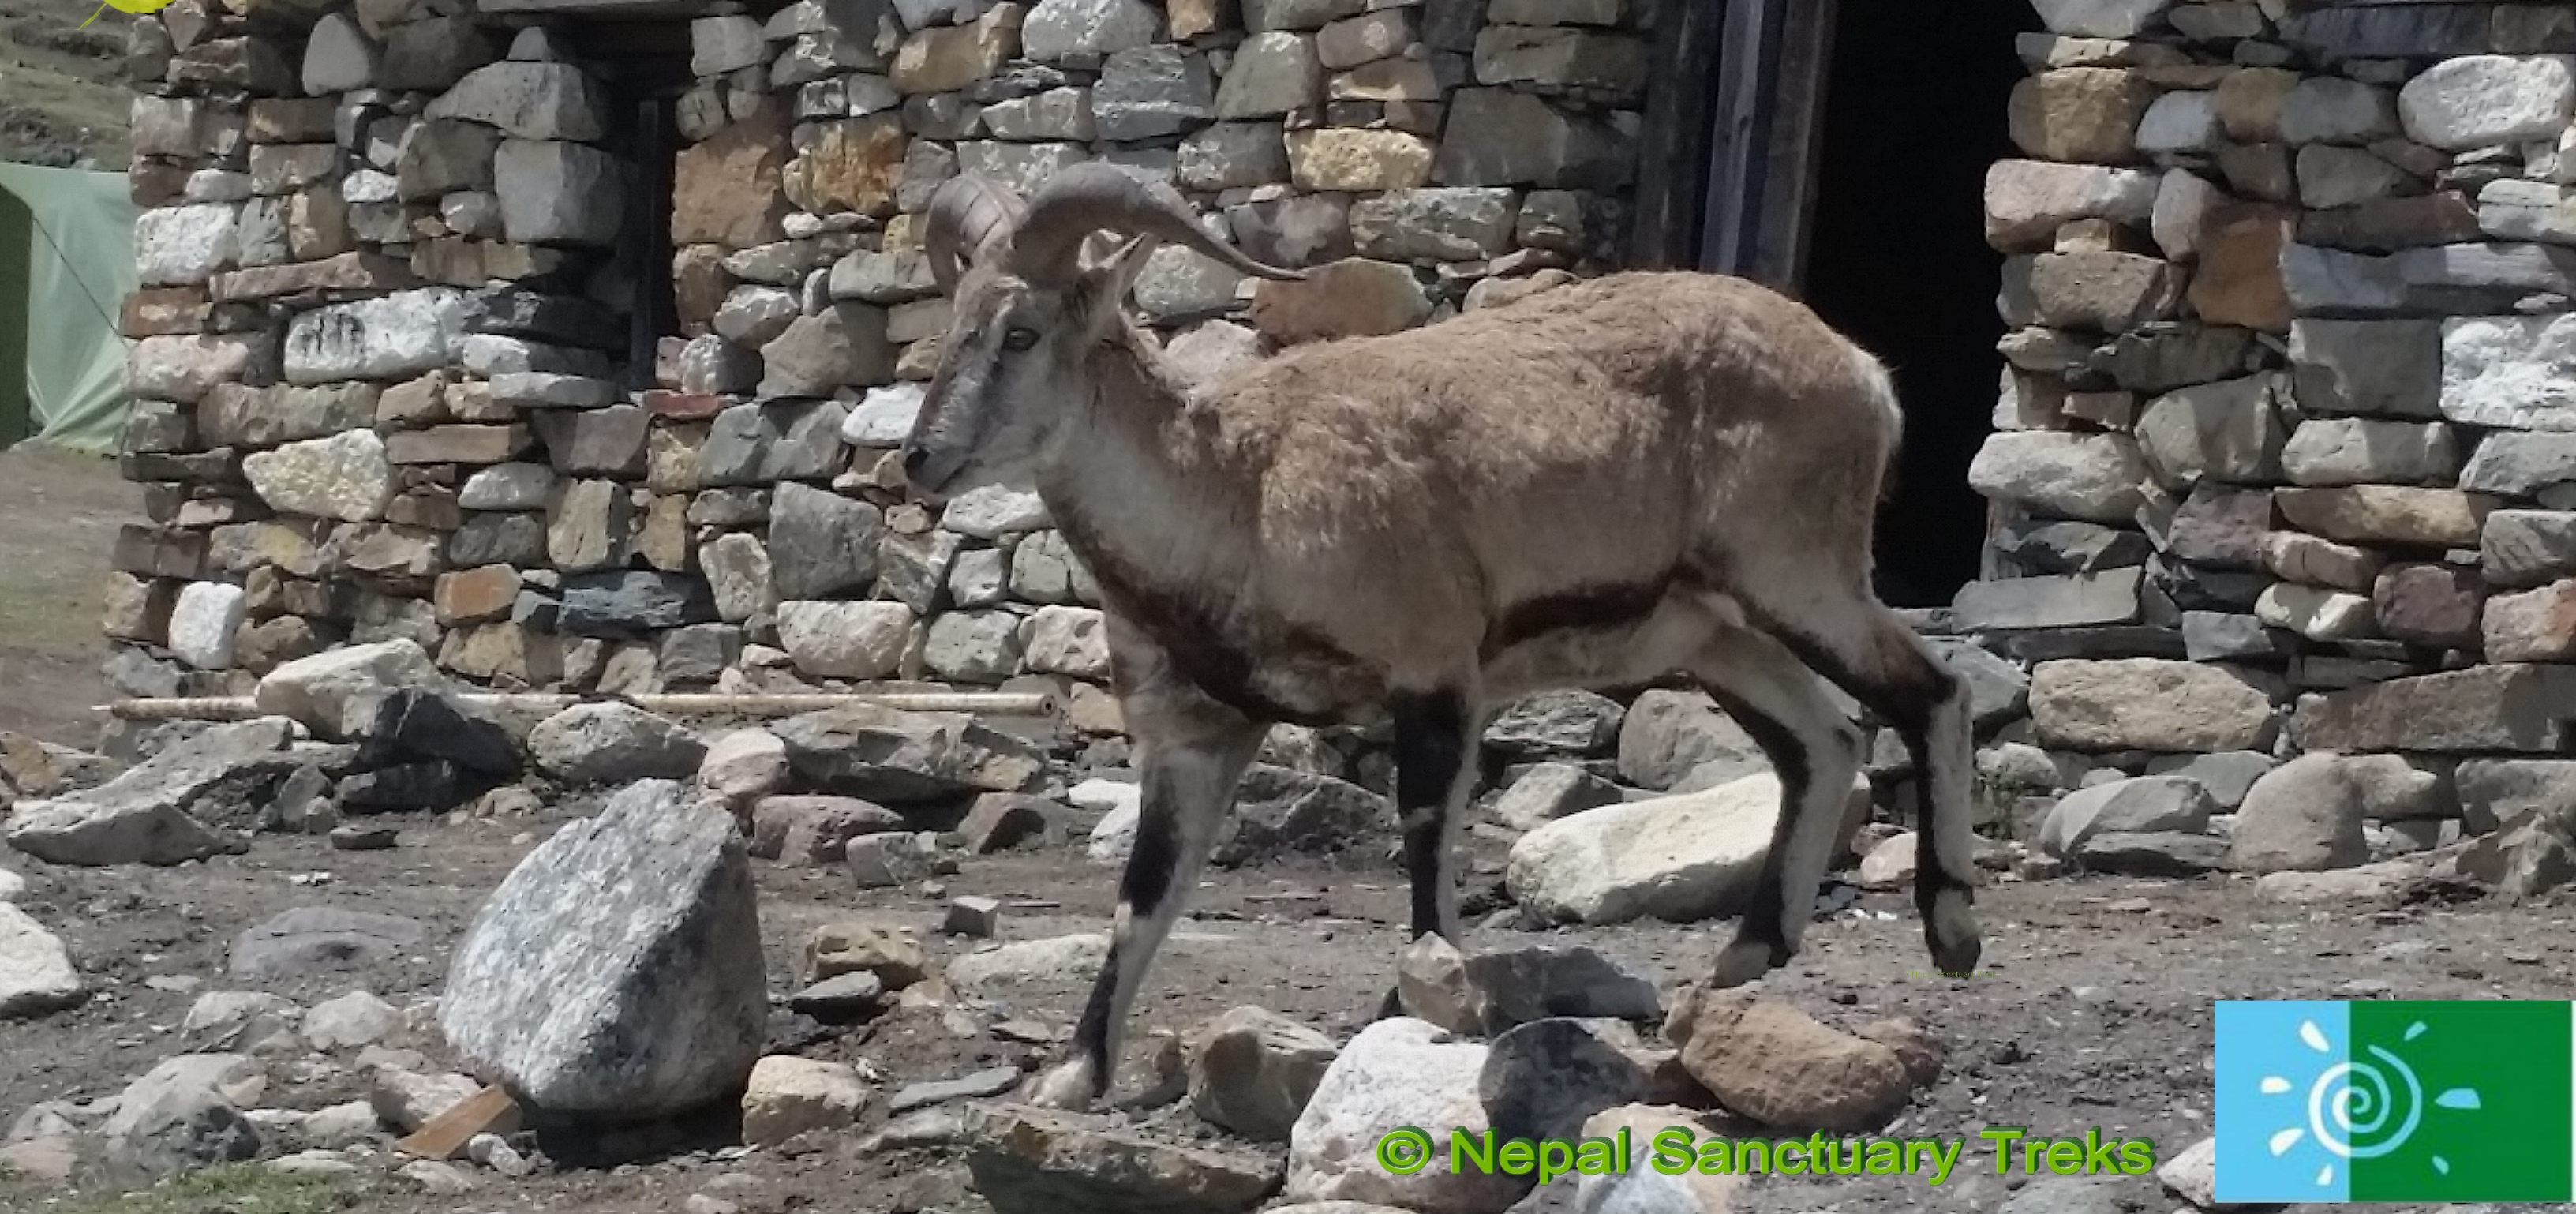 Manaslu Trek: Blue Sheep in Manaslu Dharmashala